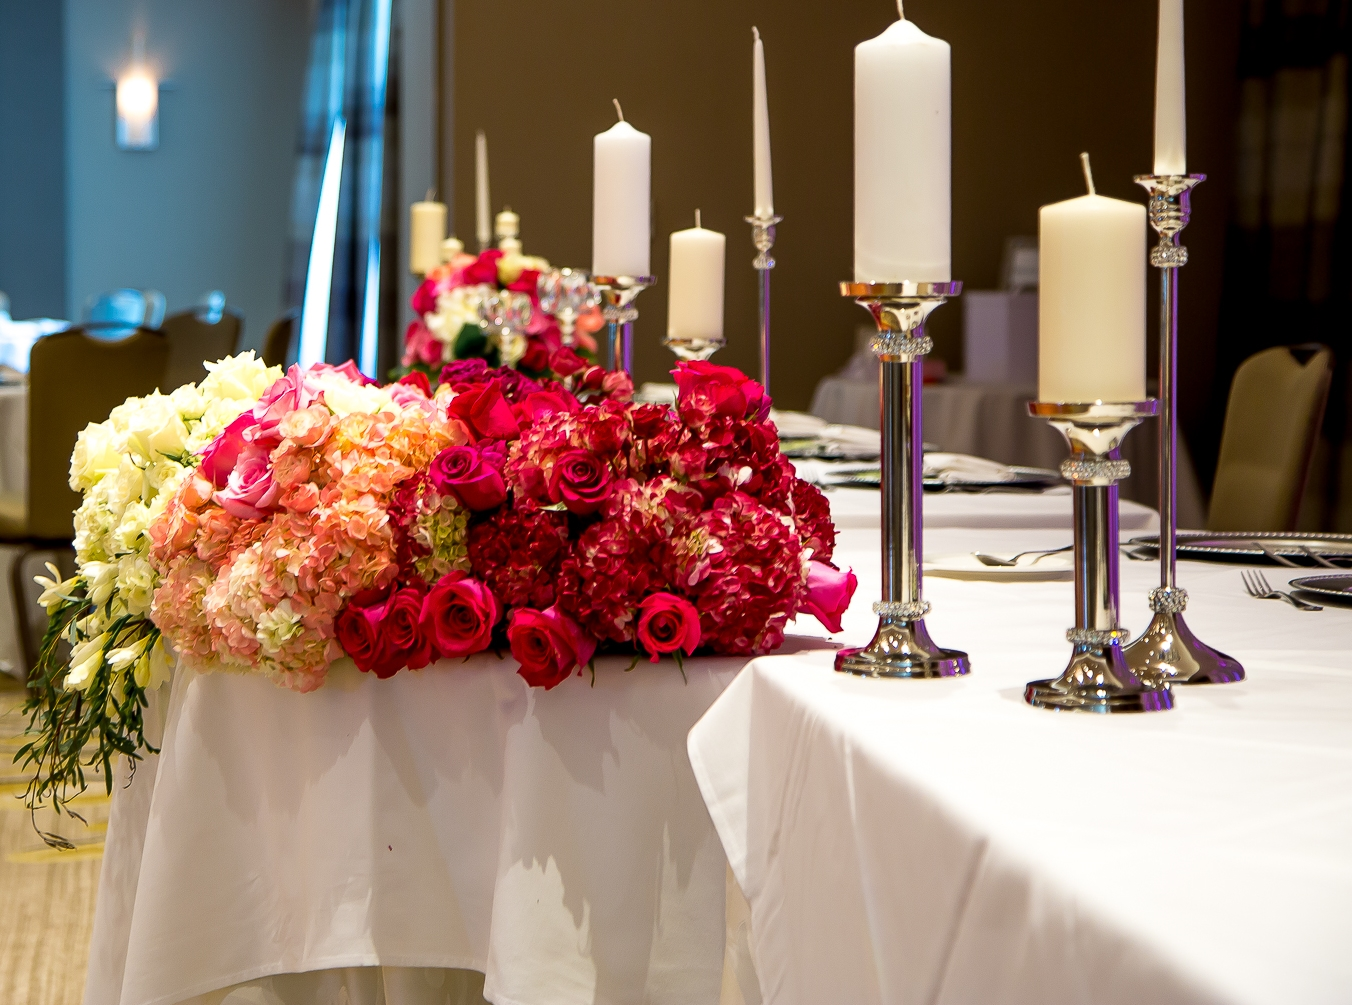 Our professional florist will work with you to make sure floral elements balance perfectly with your overall event theme